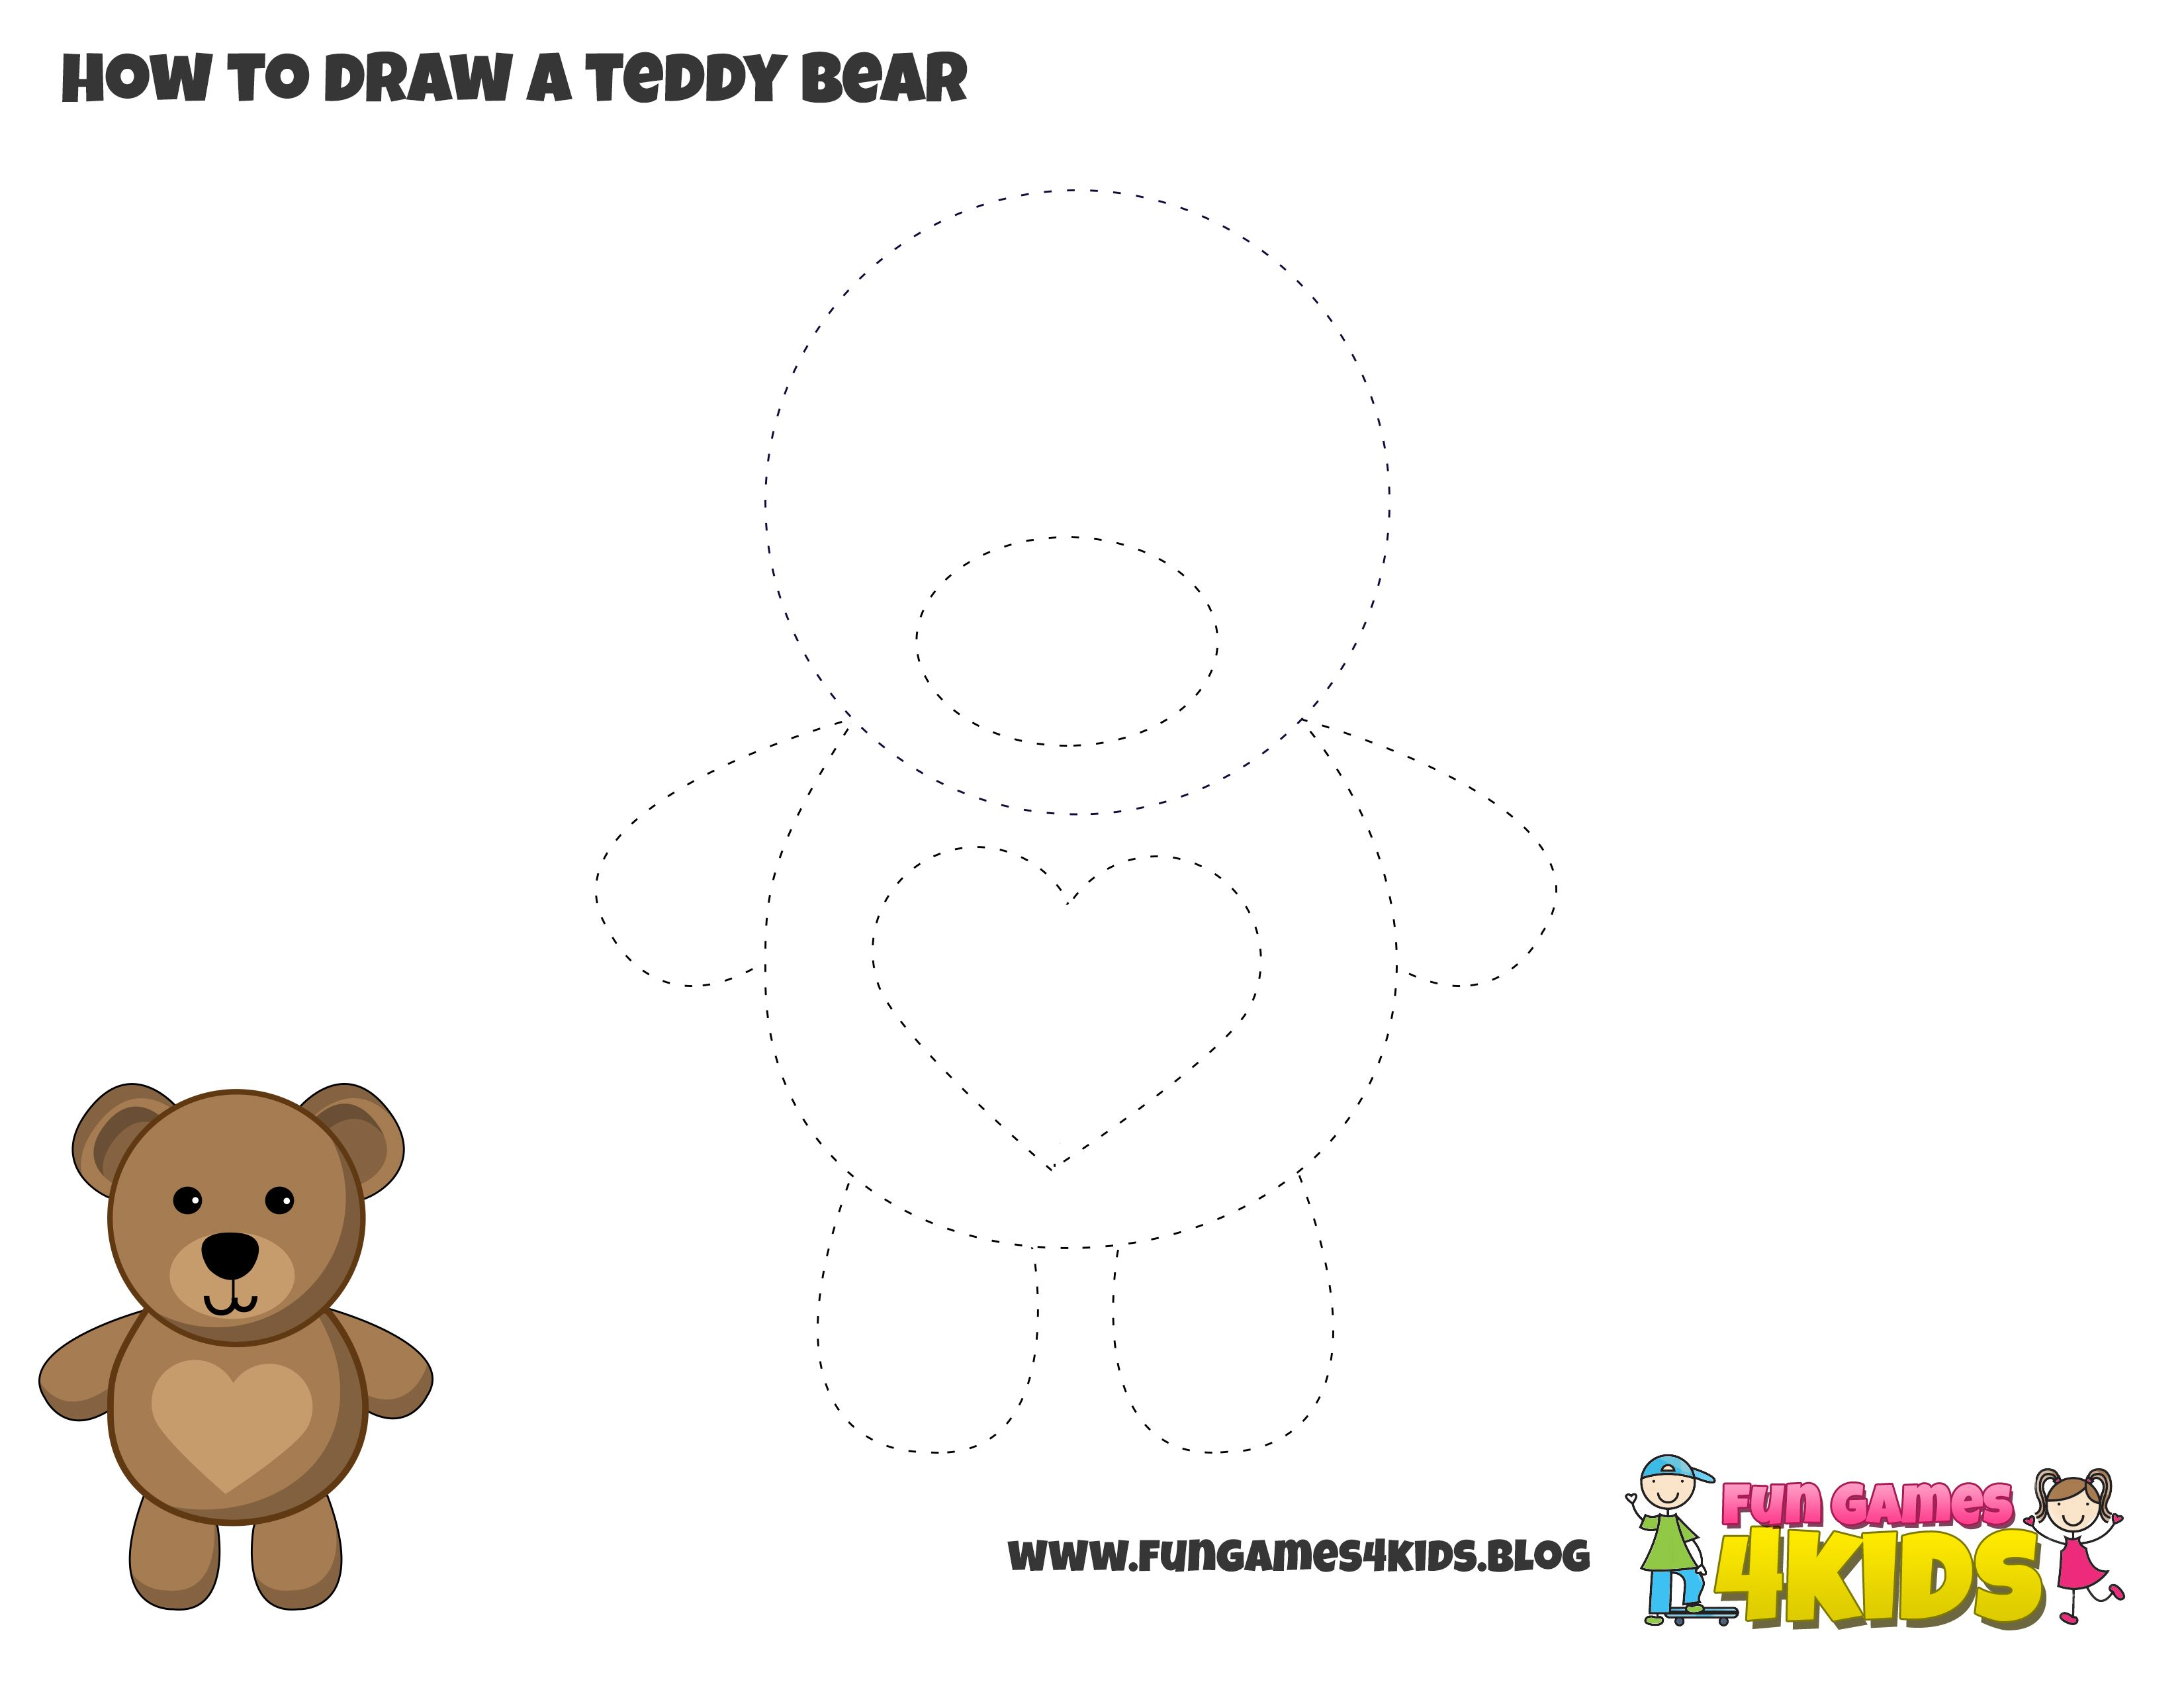 How To Draw A Teddy Bear From Fungames4kids Club